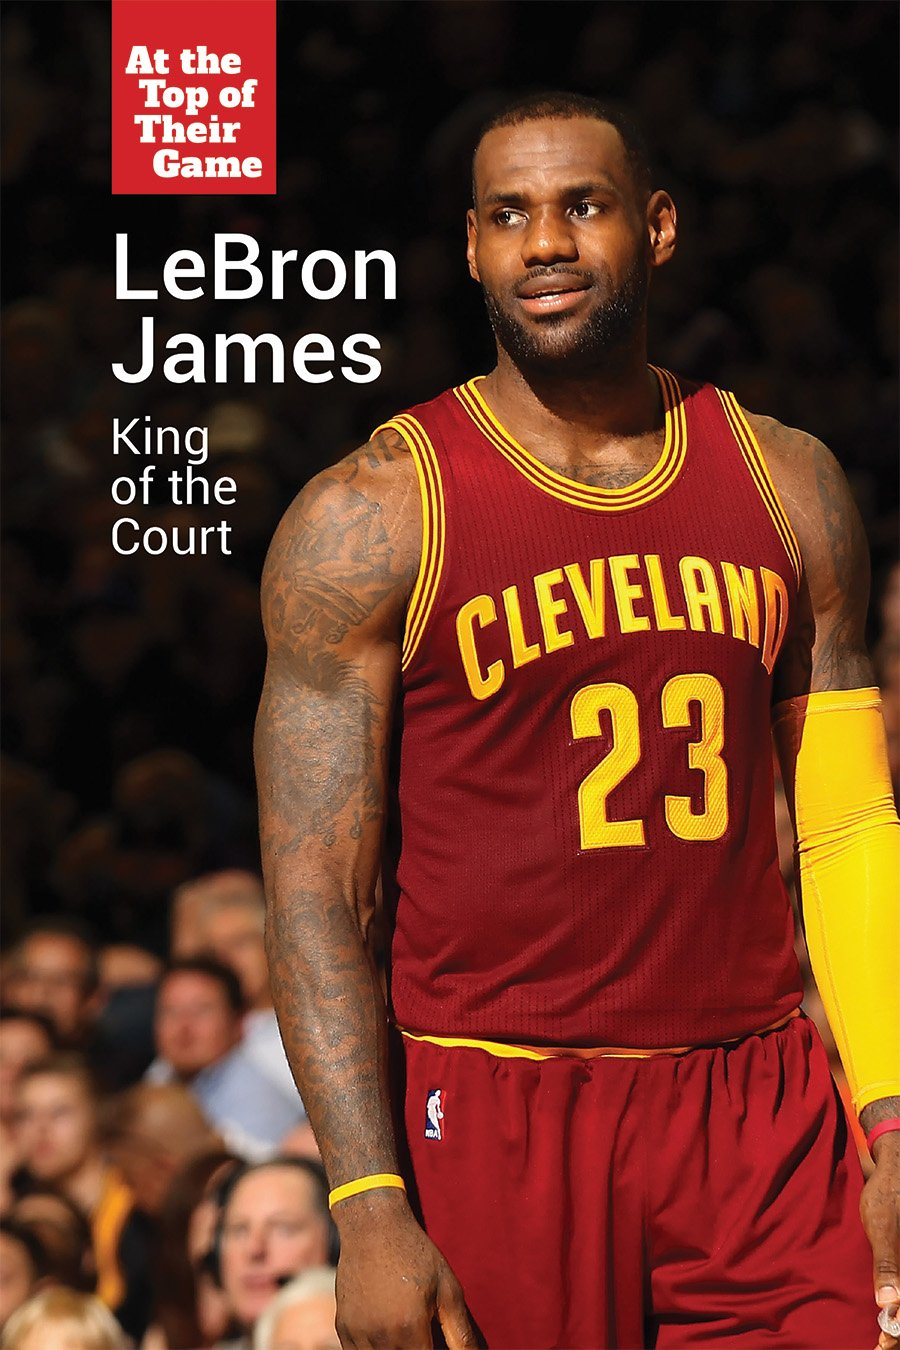 Lebron James: King of the Court (At the Top of Their Game) PDF